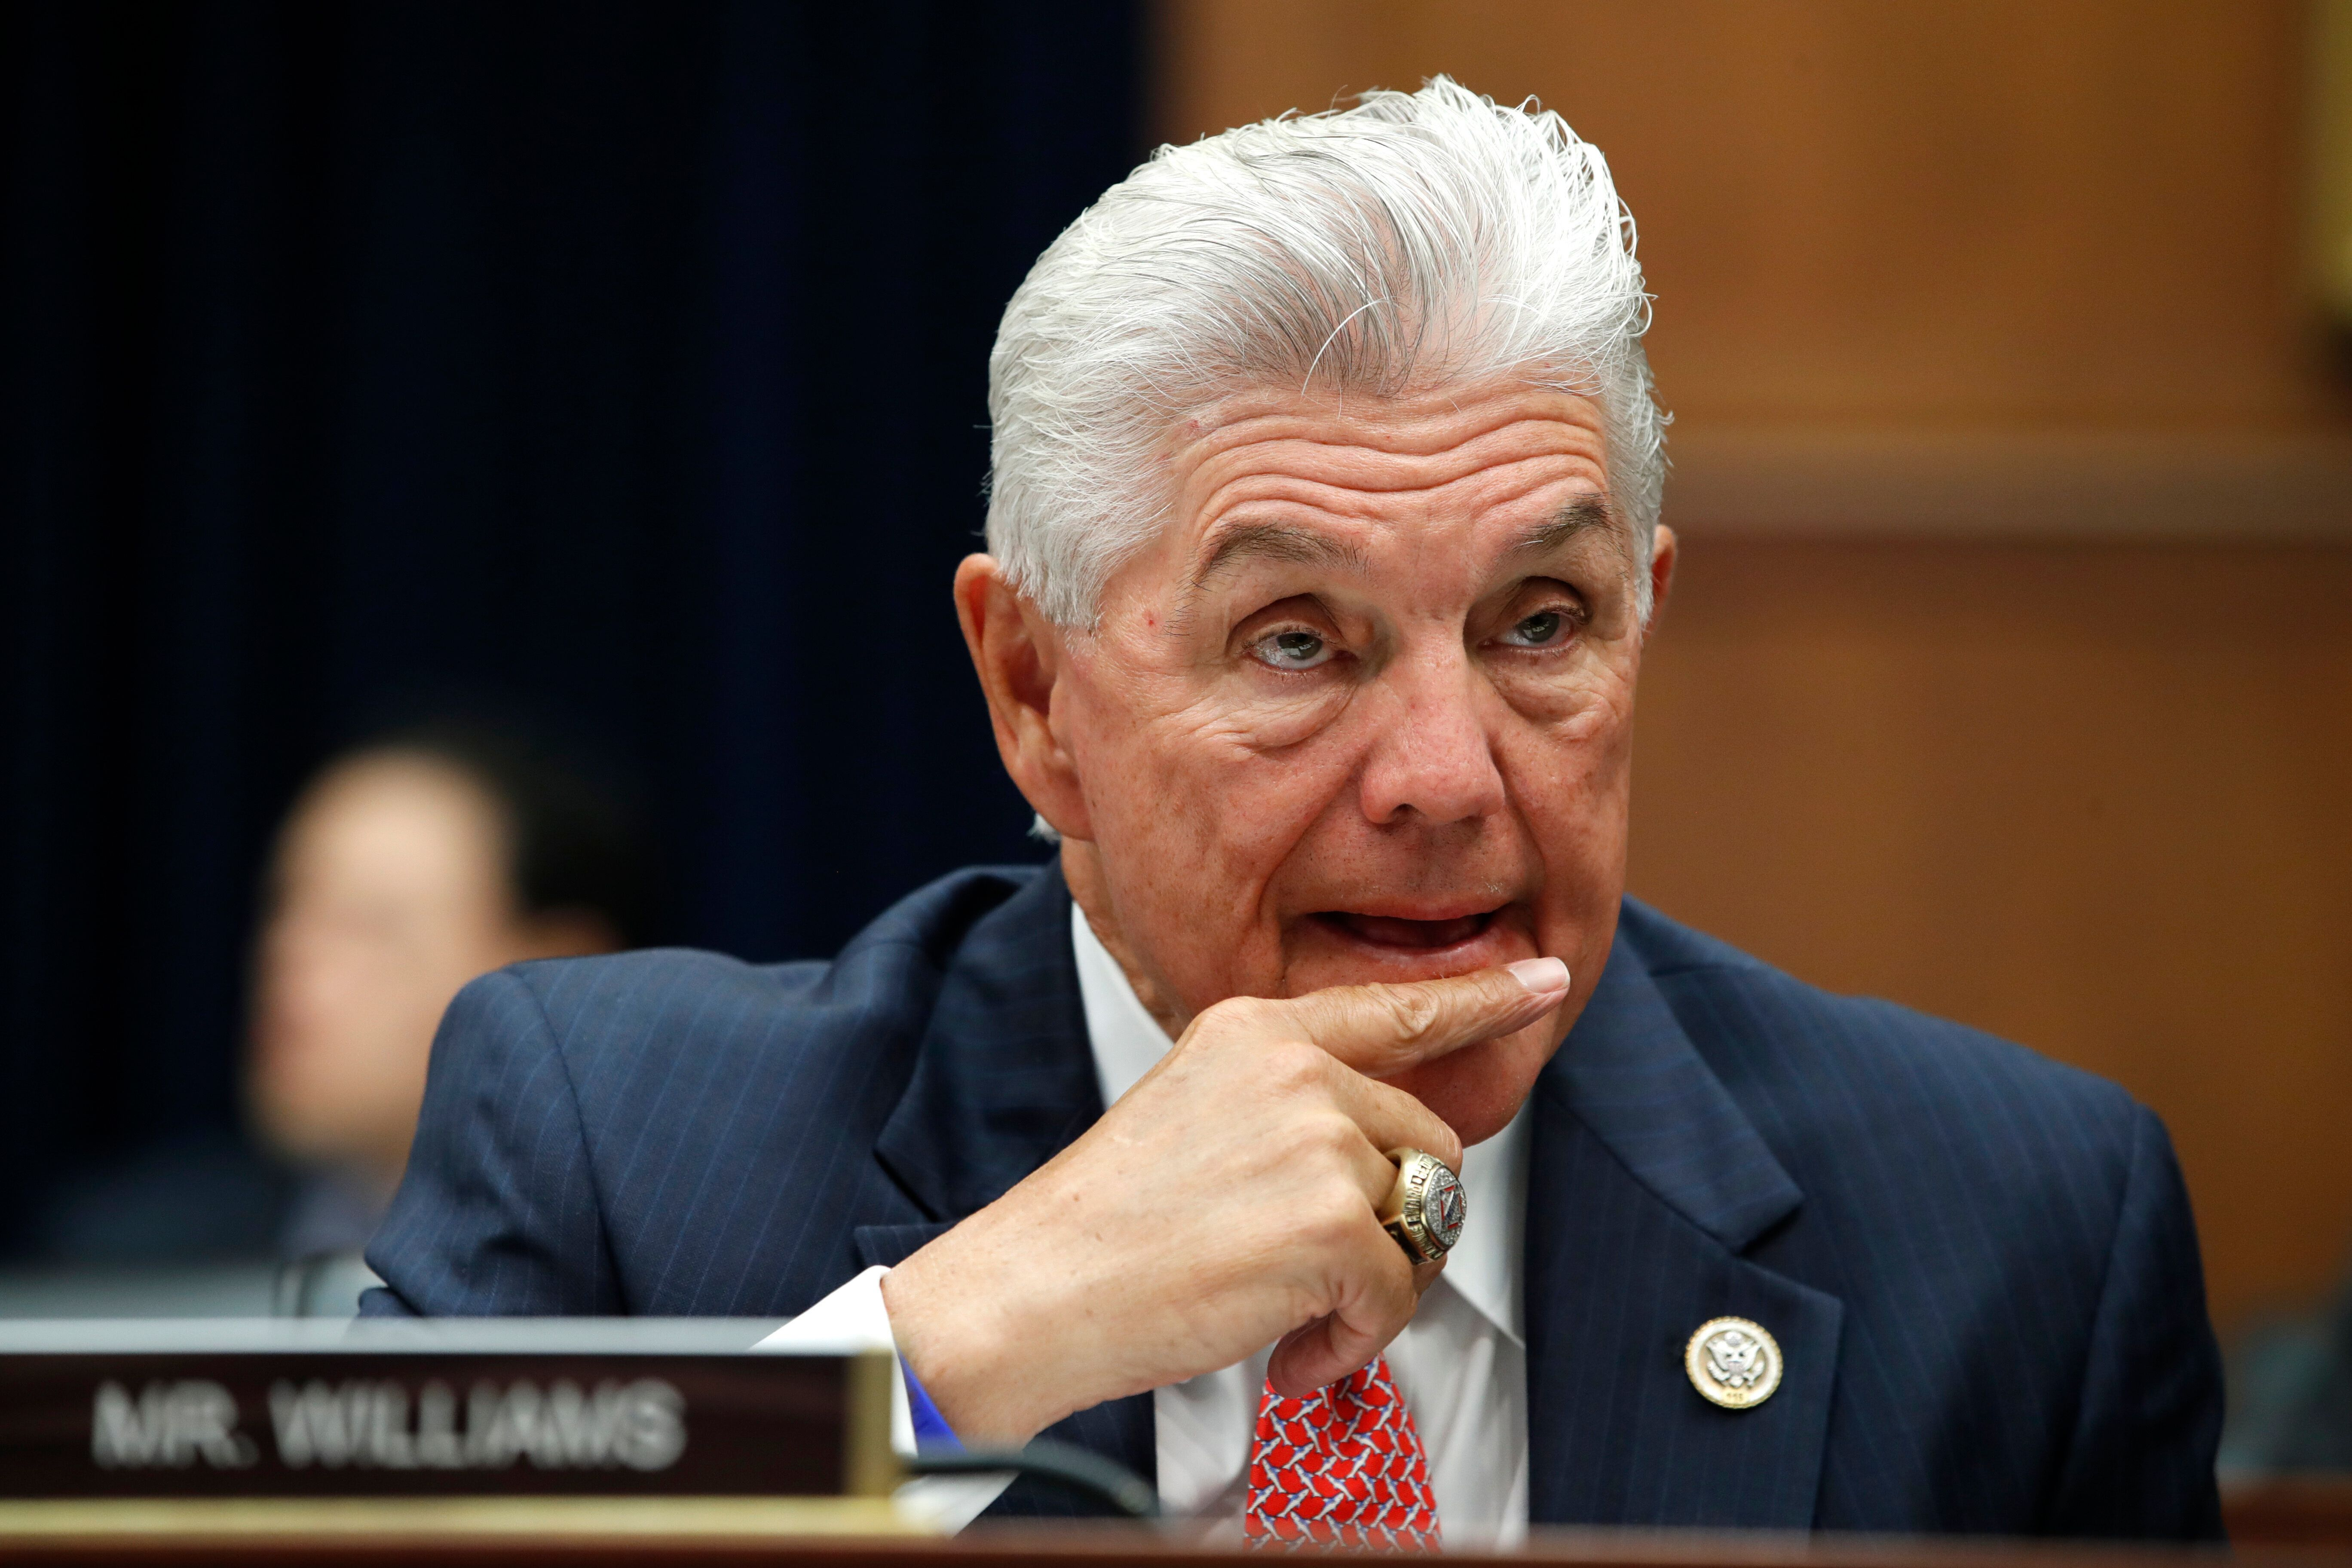 Rep. Roger Williams (R-Texas), one of the richest members of Congress, received a coronavirus business assistance loan of $1